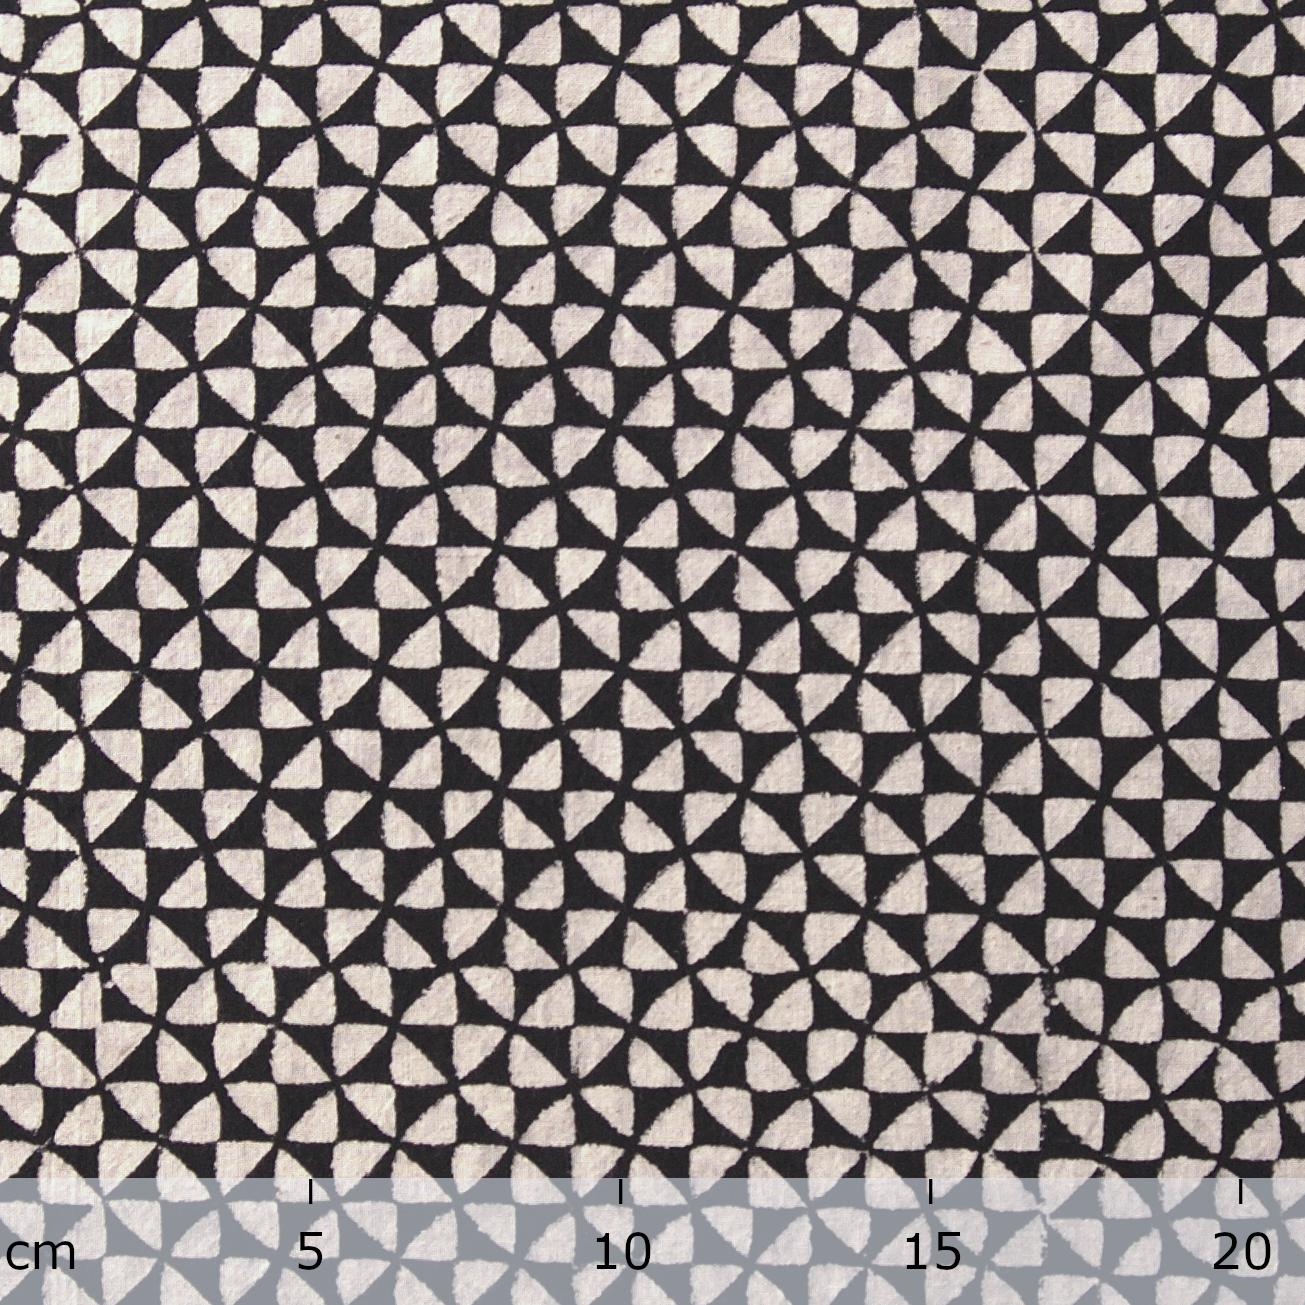 3 - IBR26 - 100% Block-Printed Cotton Fabric From India- Ajrak - Black White Resist Hourglass Print - Ruler